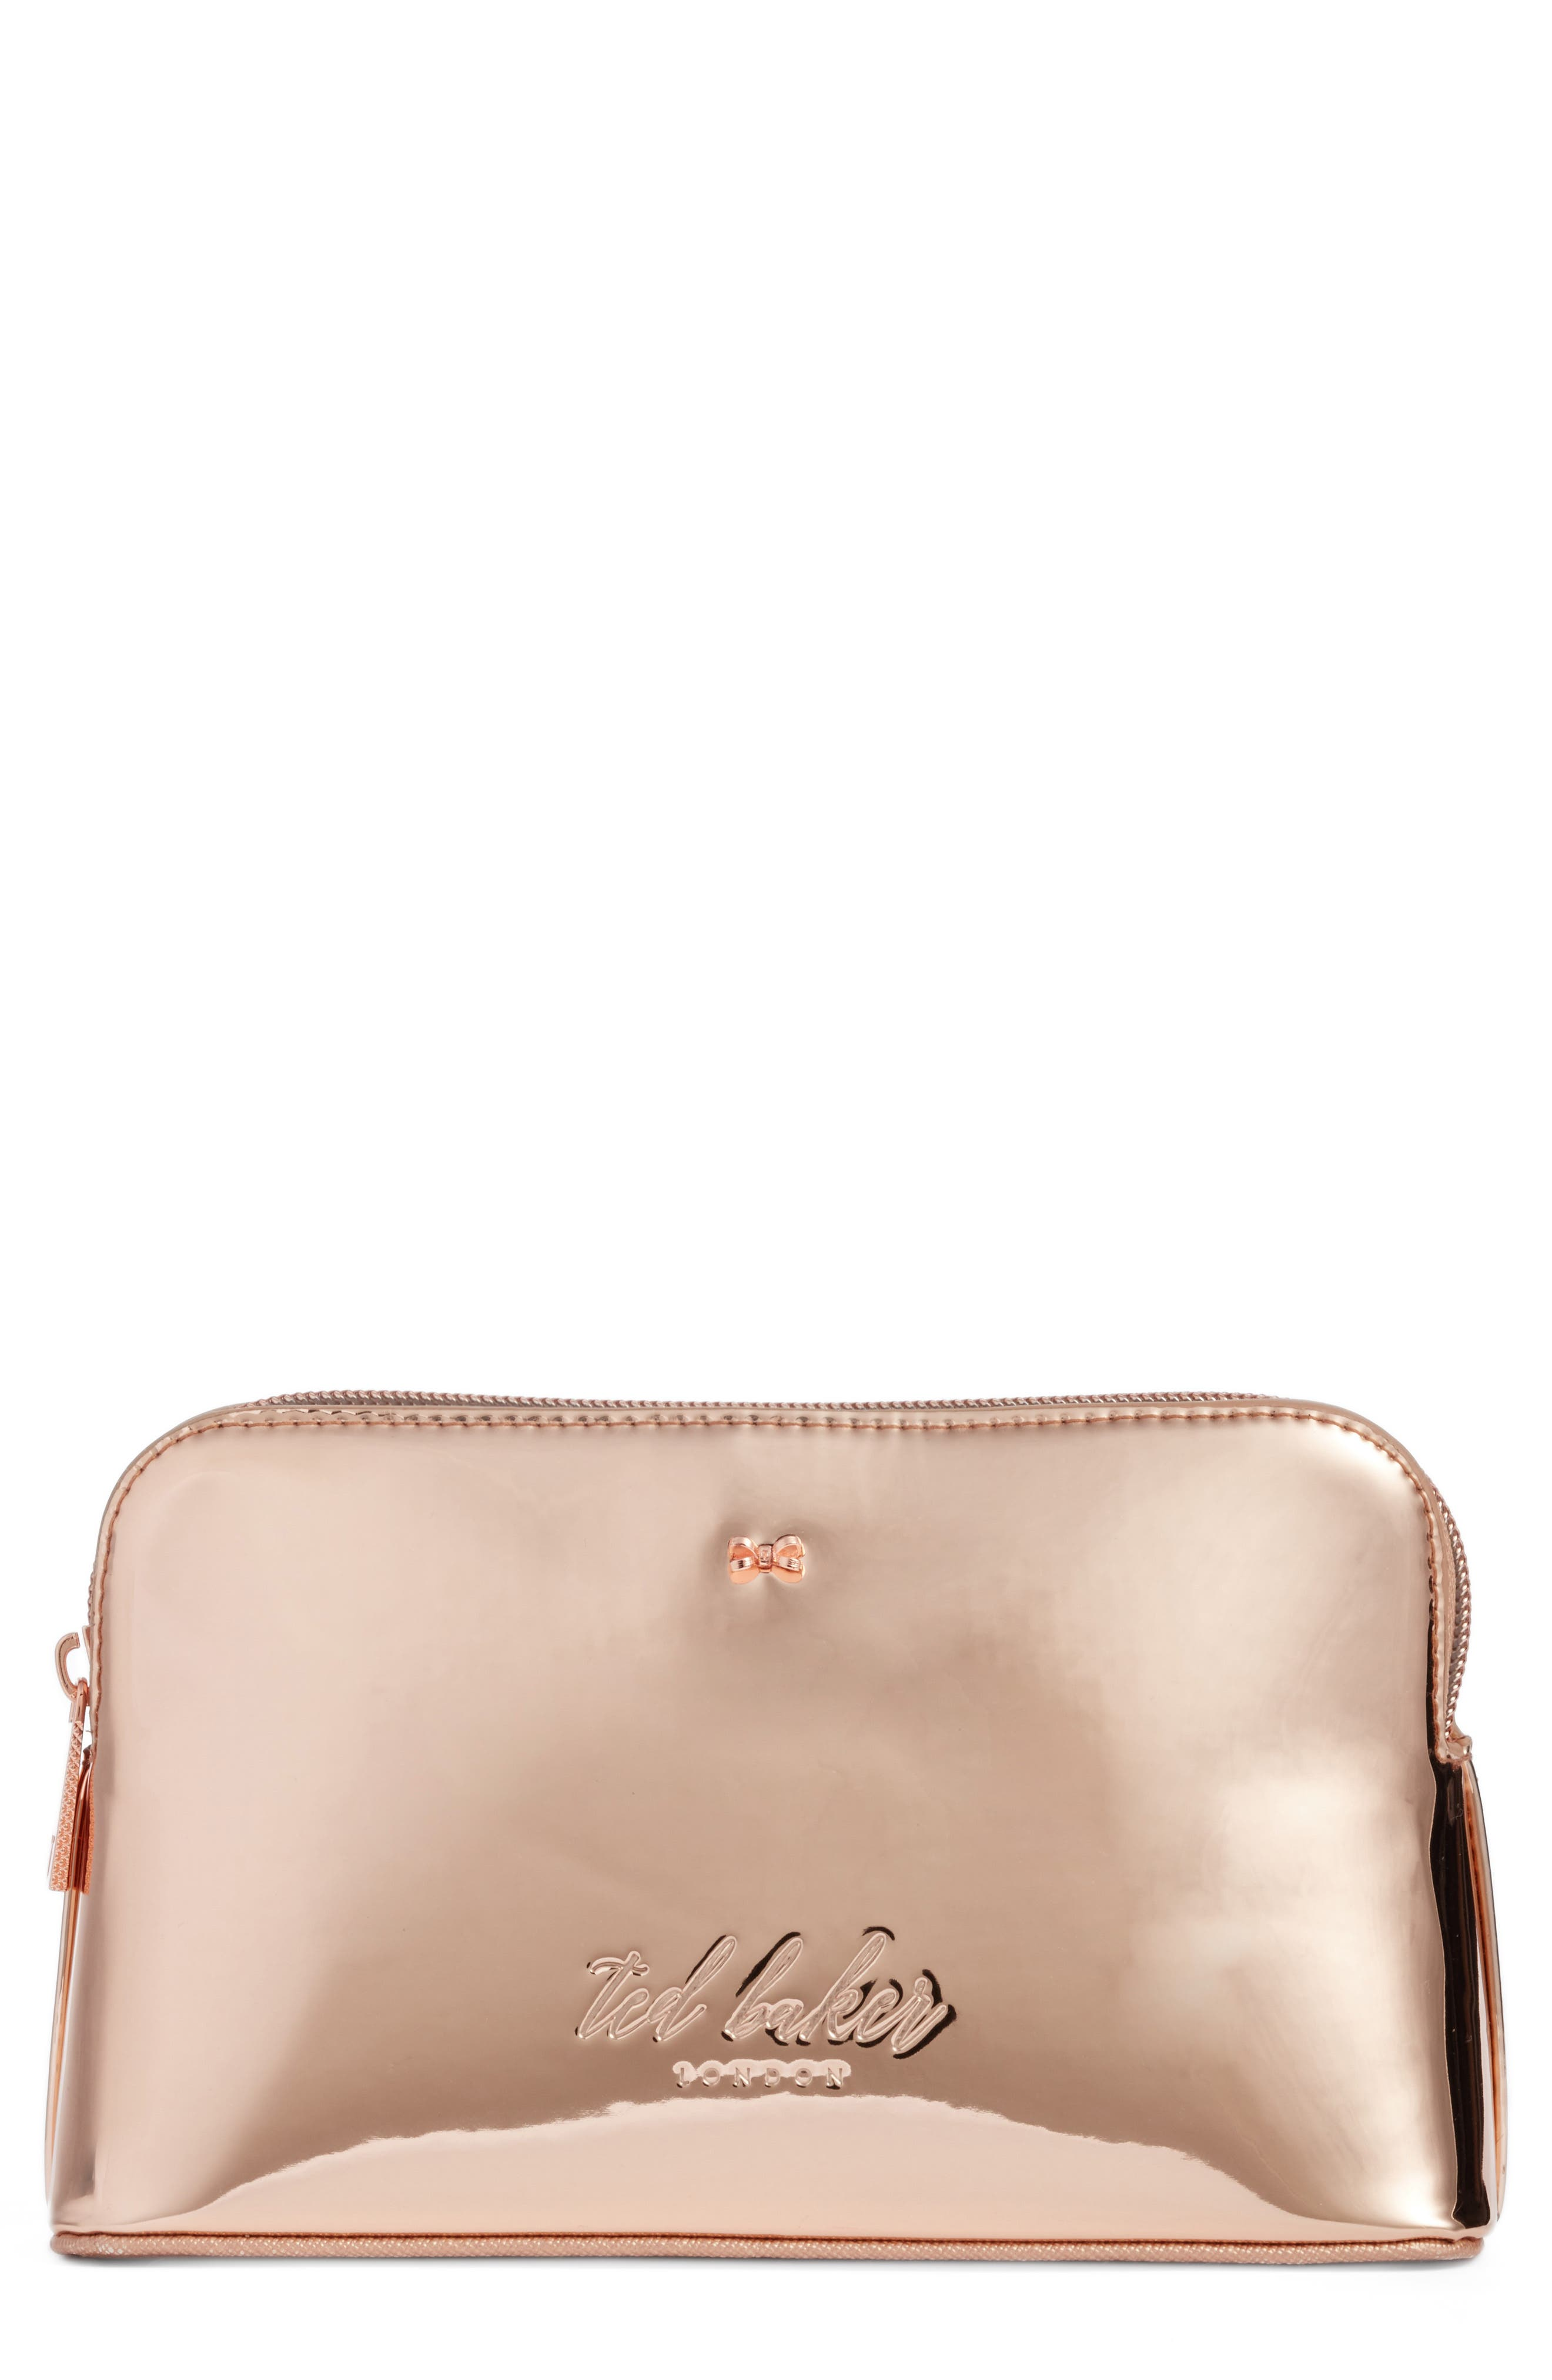 Main Image - Ted Baker London Lindsay Metallic Cosmetics Case